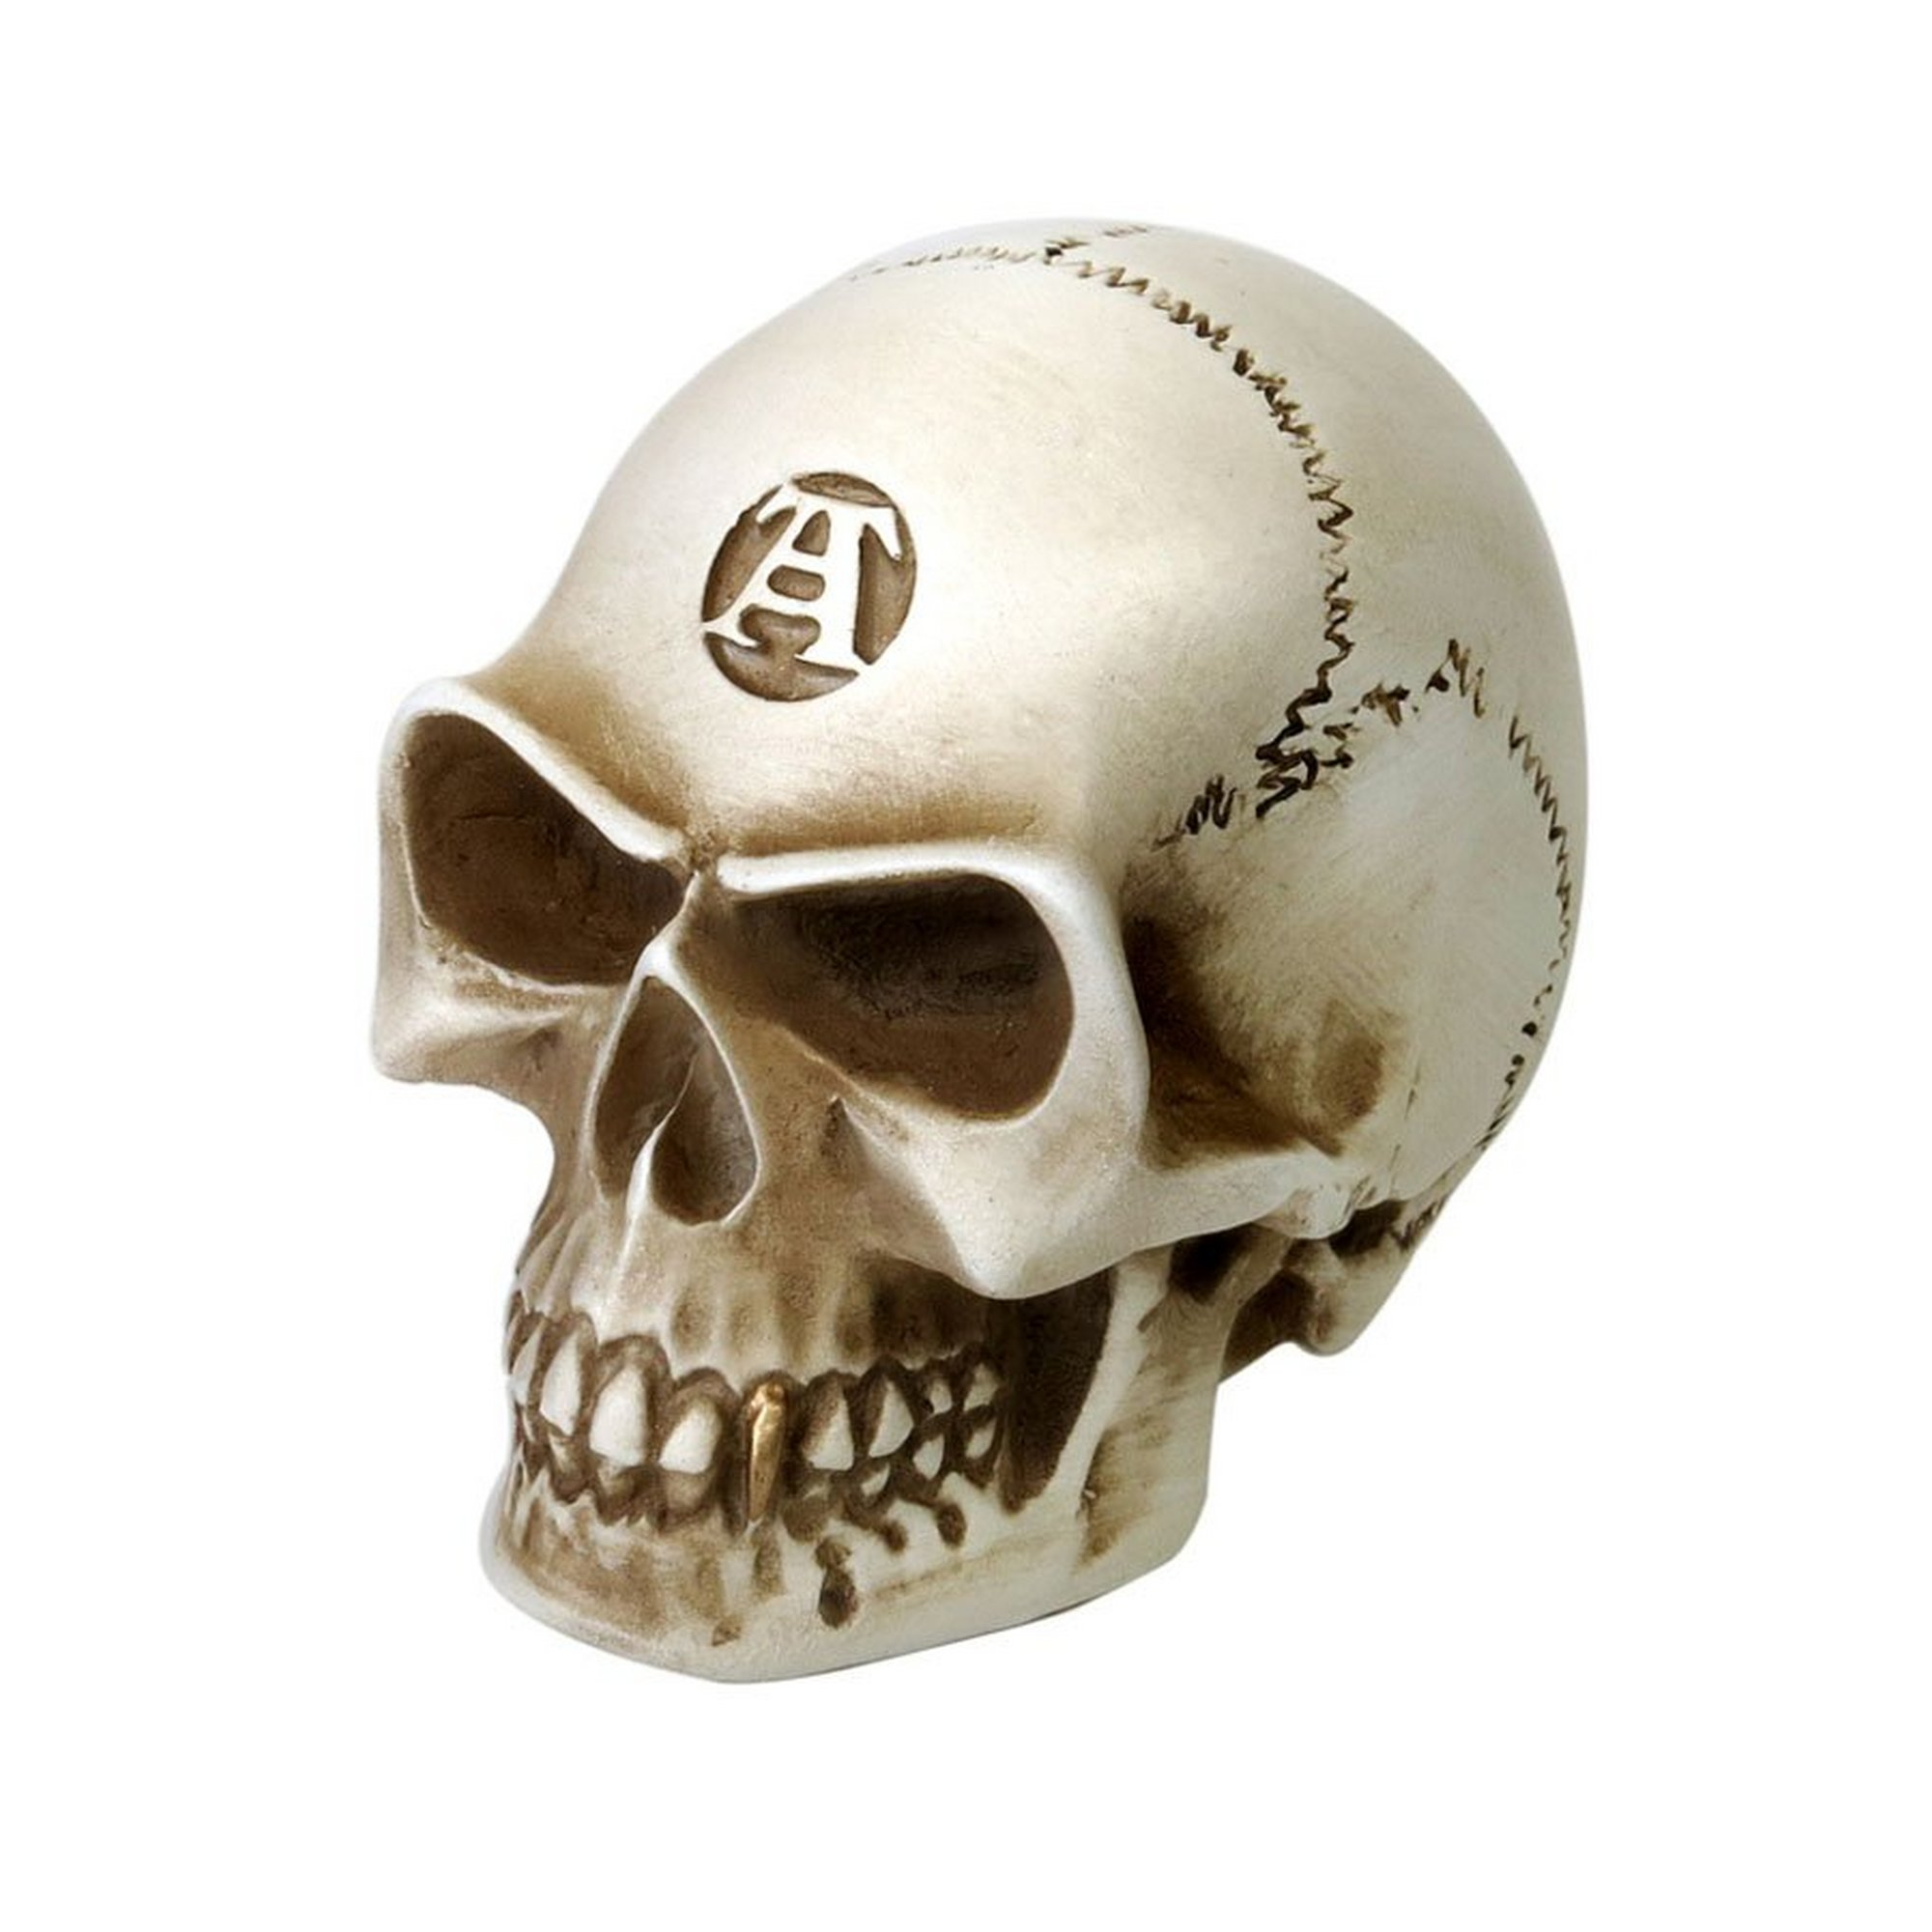 Image of Alchemist Bone Gear Knob/Model